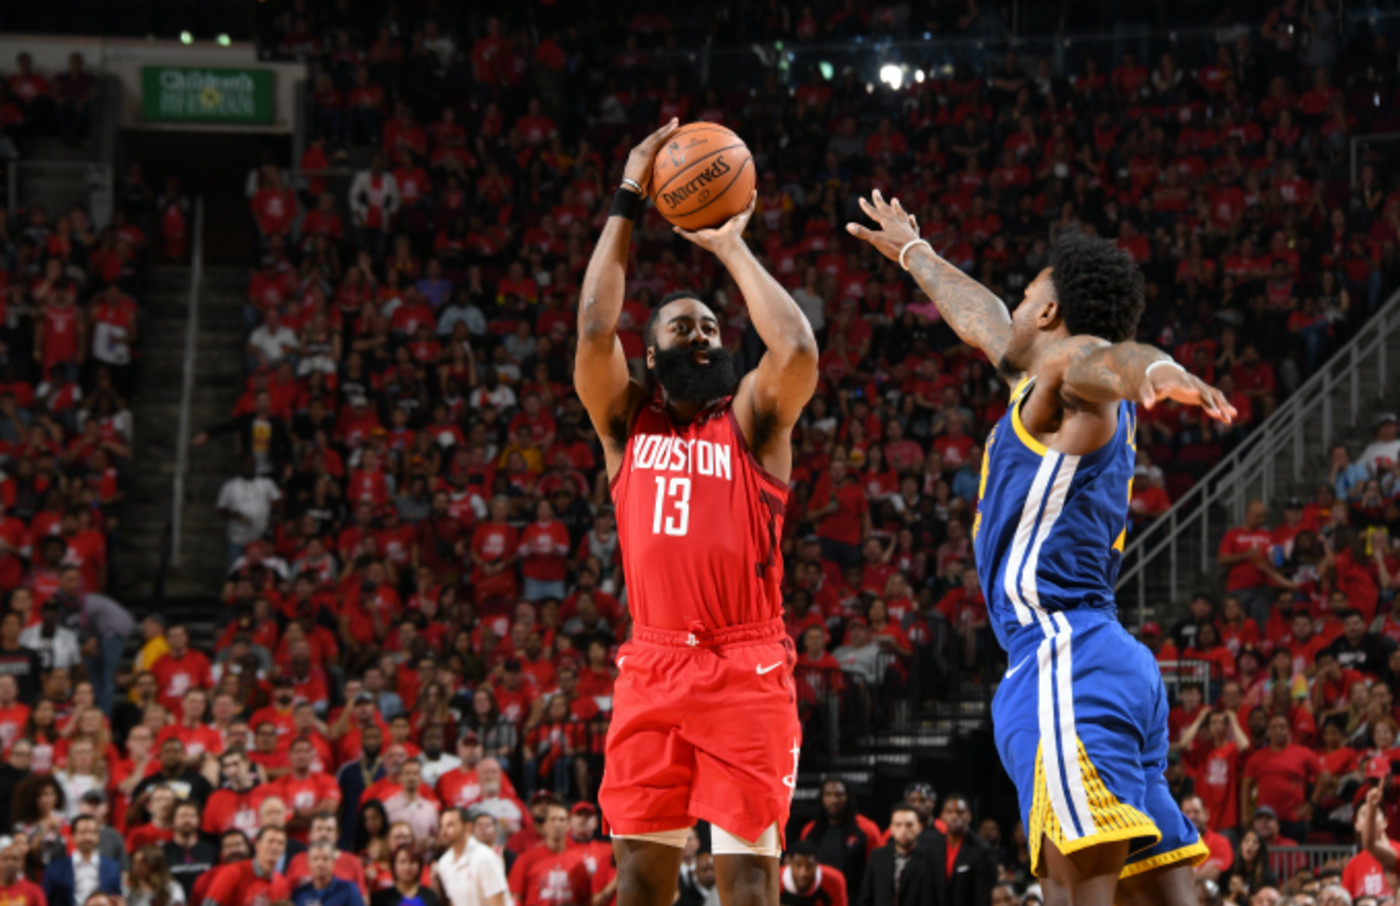 James Harden #13 of the Houston Rockets